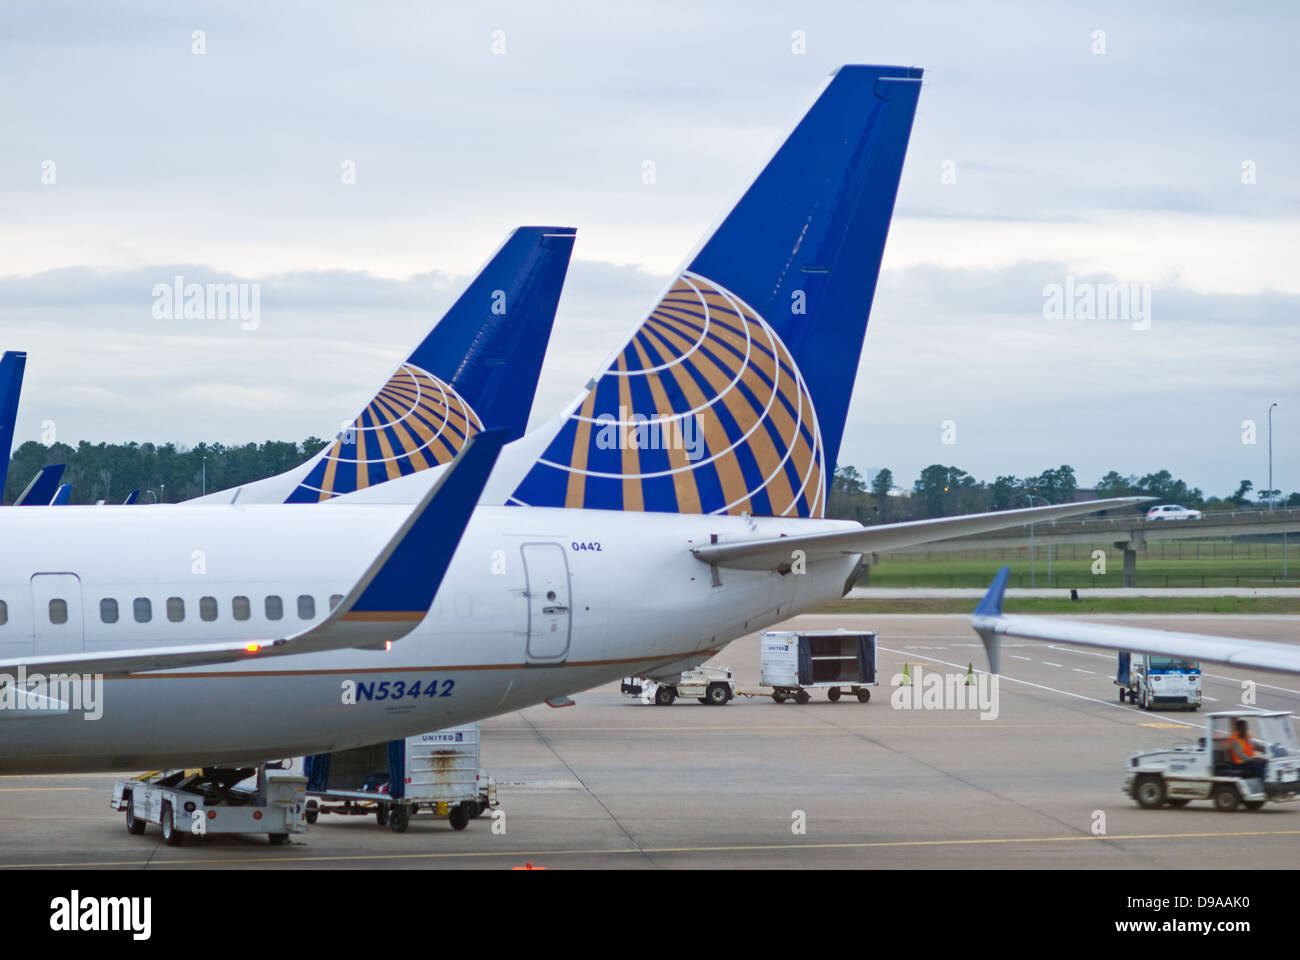 Houston, Texas, USA - February 1, 2013: United Airlines aircraft parked at a gate at George Bush International (IAH) - Stock Image